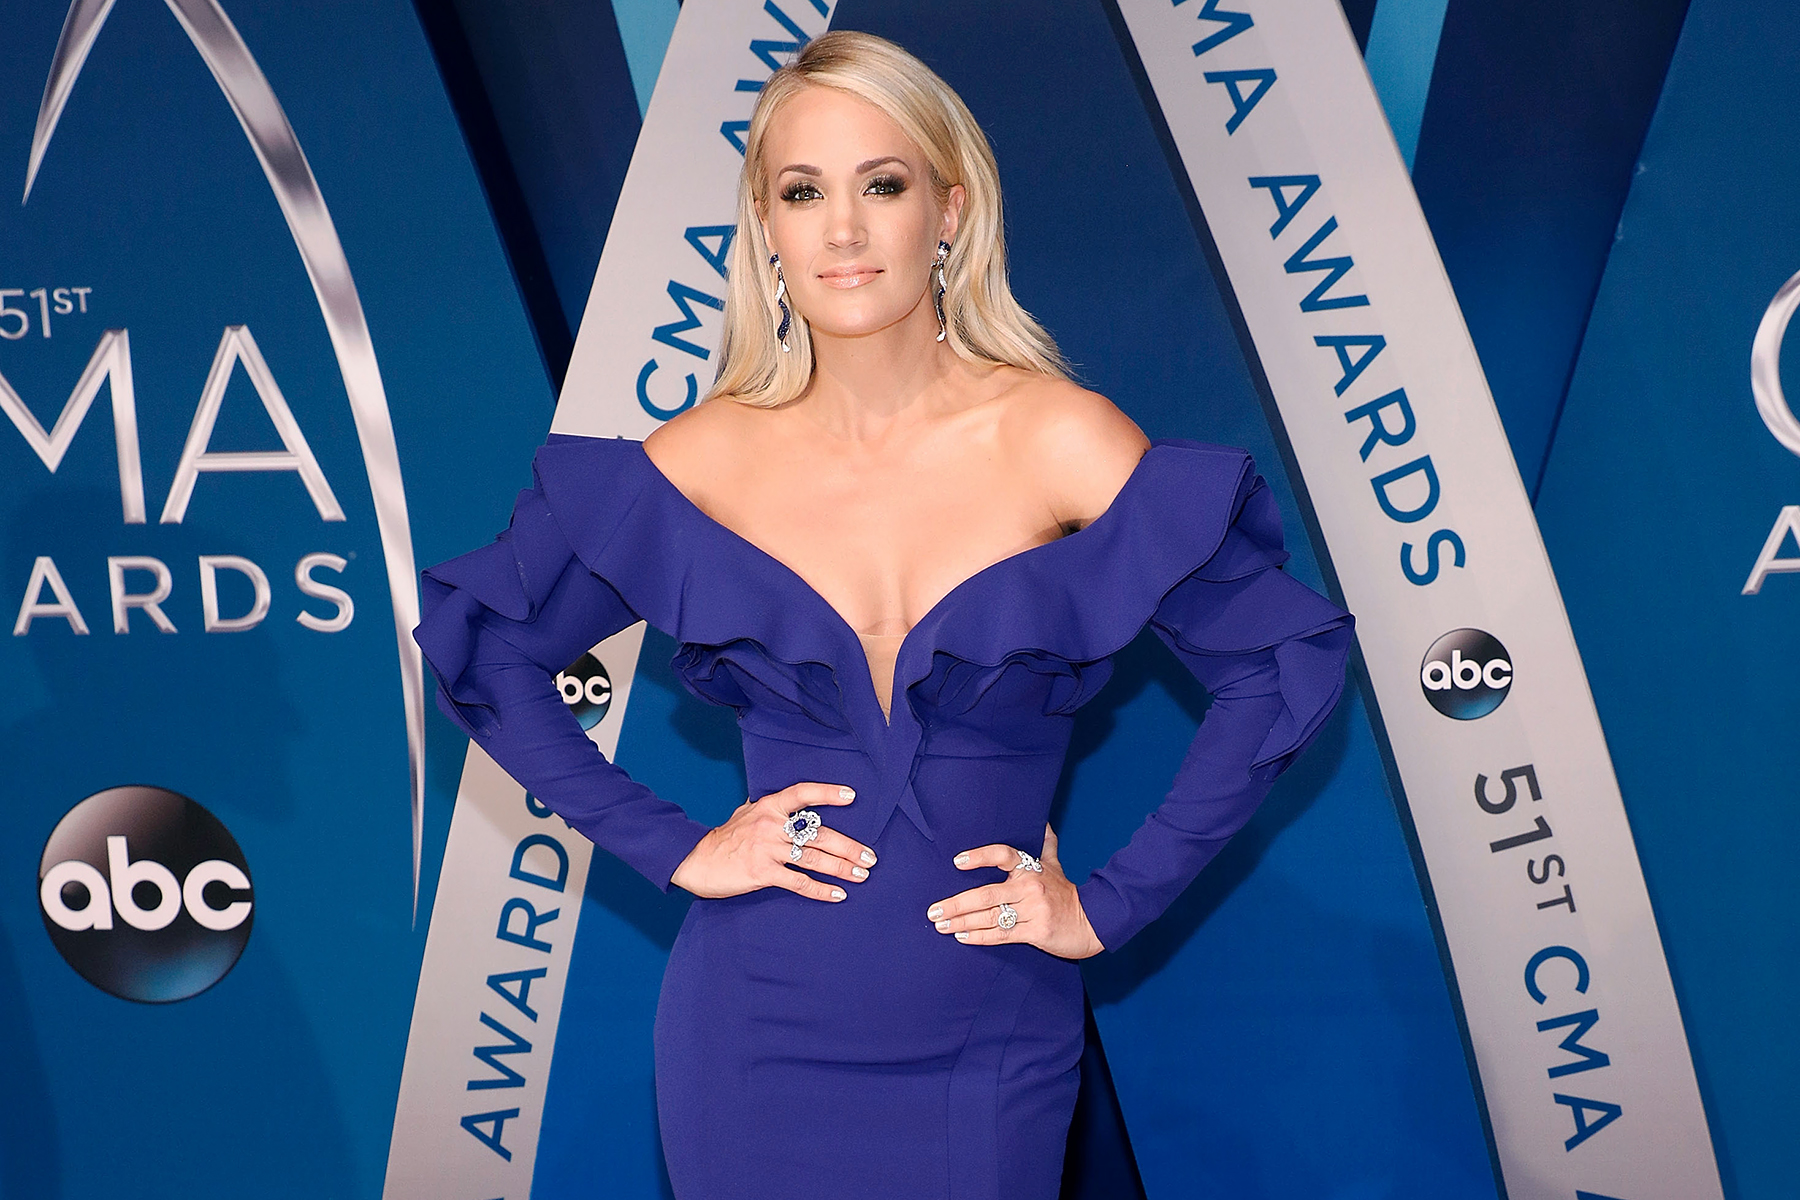 Carrie Underwood Recovering With 40 to 50 Face Stitches After Horrific Fall